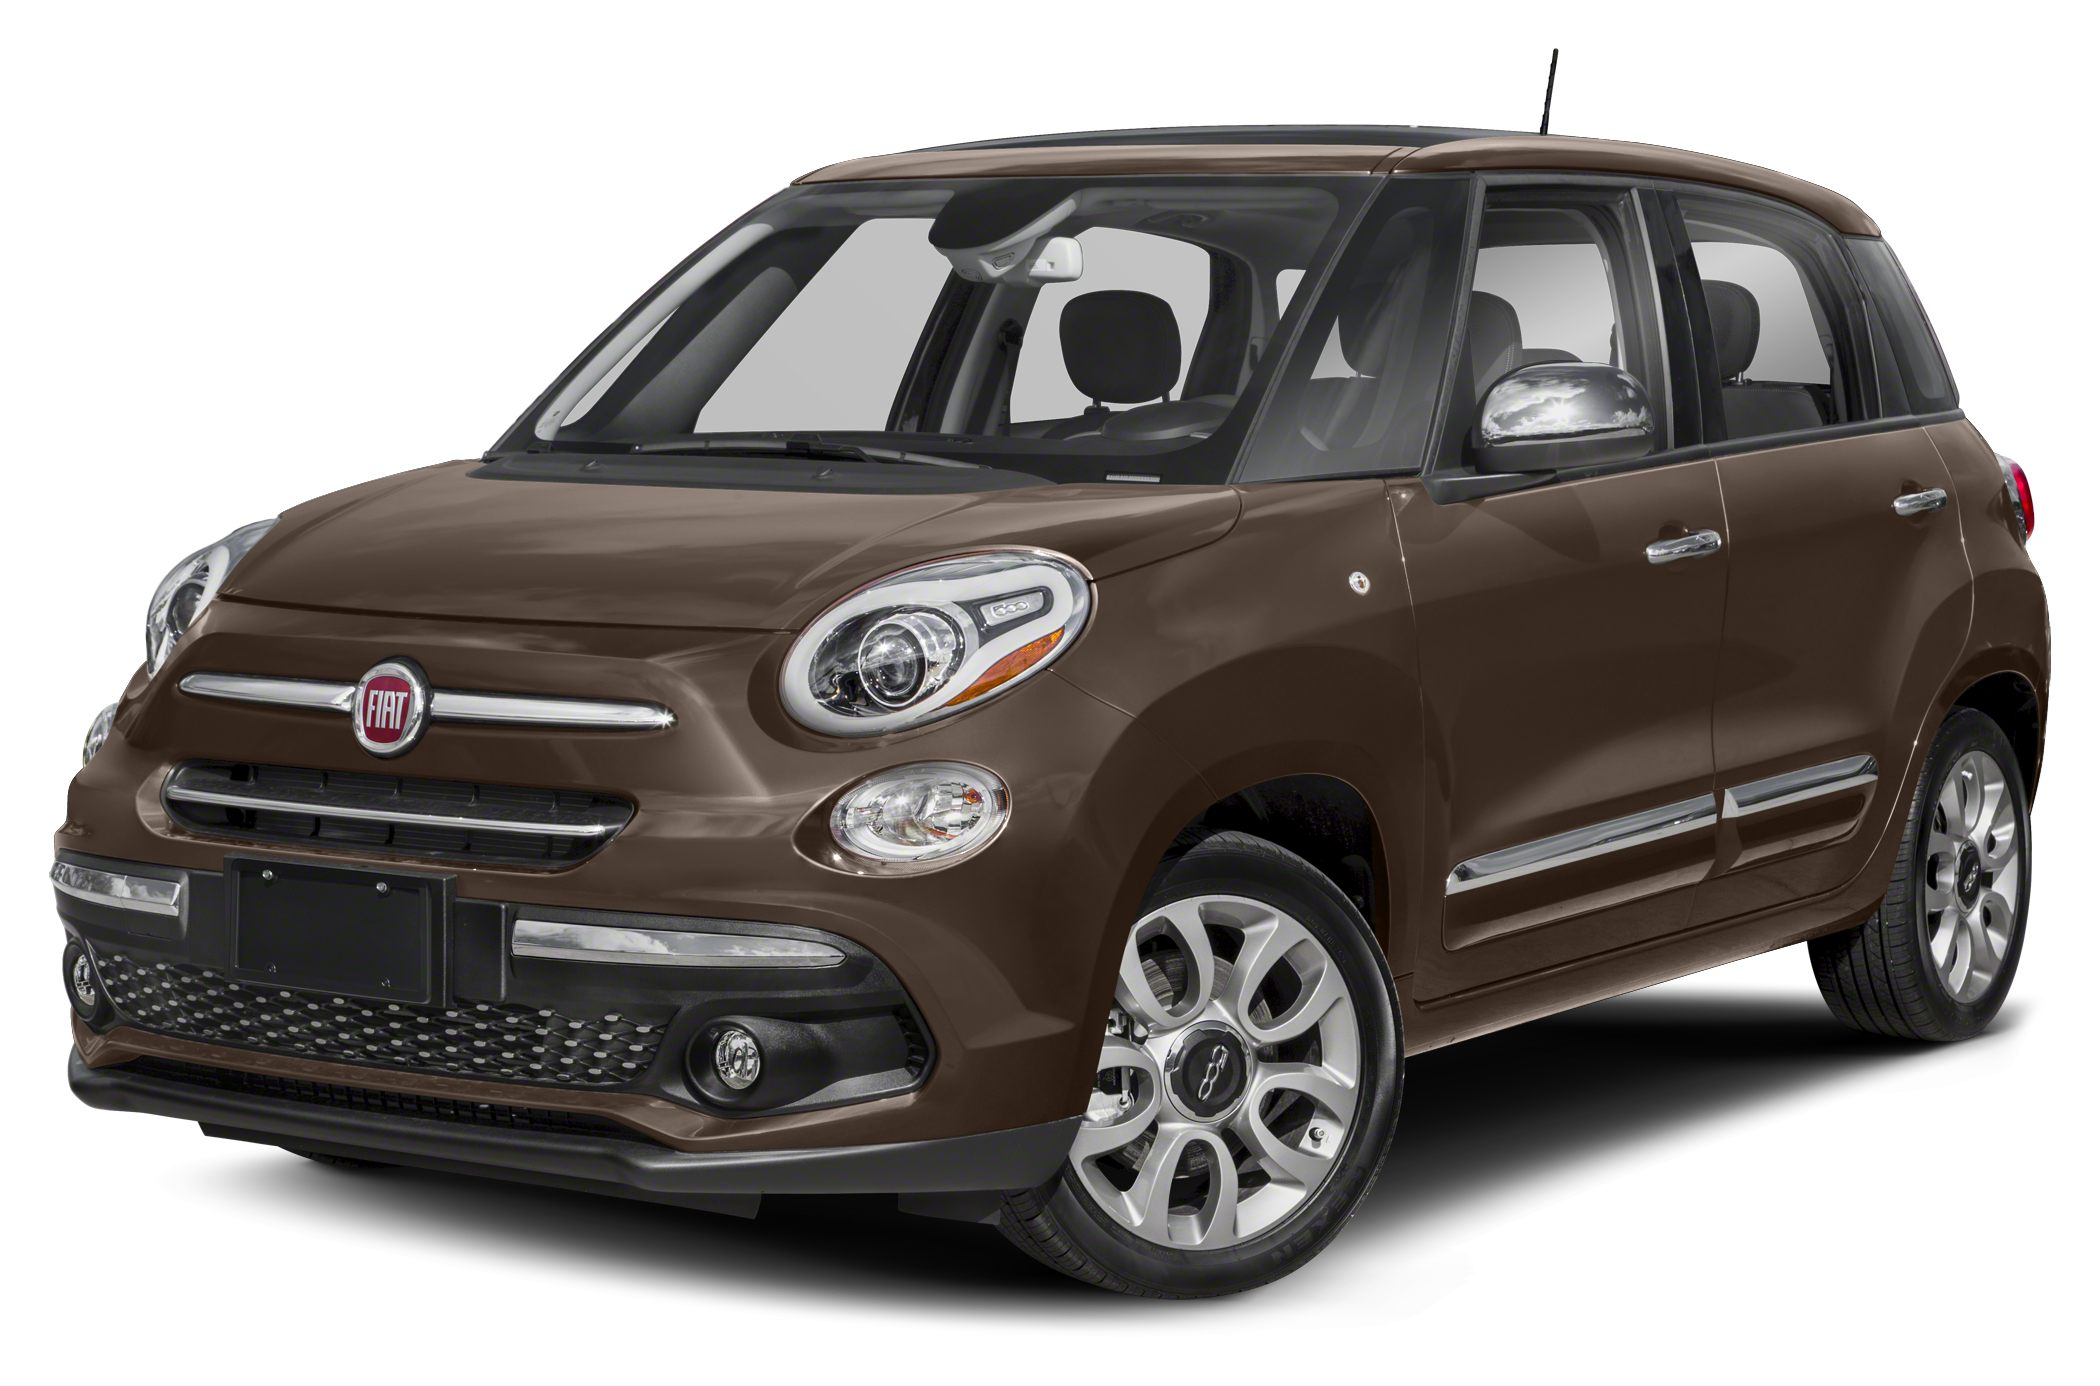 2018 FIAT 500L Trekking 4dr Hatchback Pricing and Options